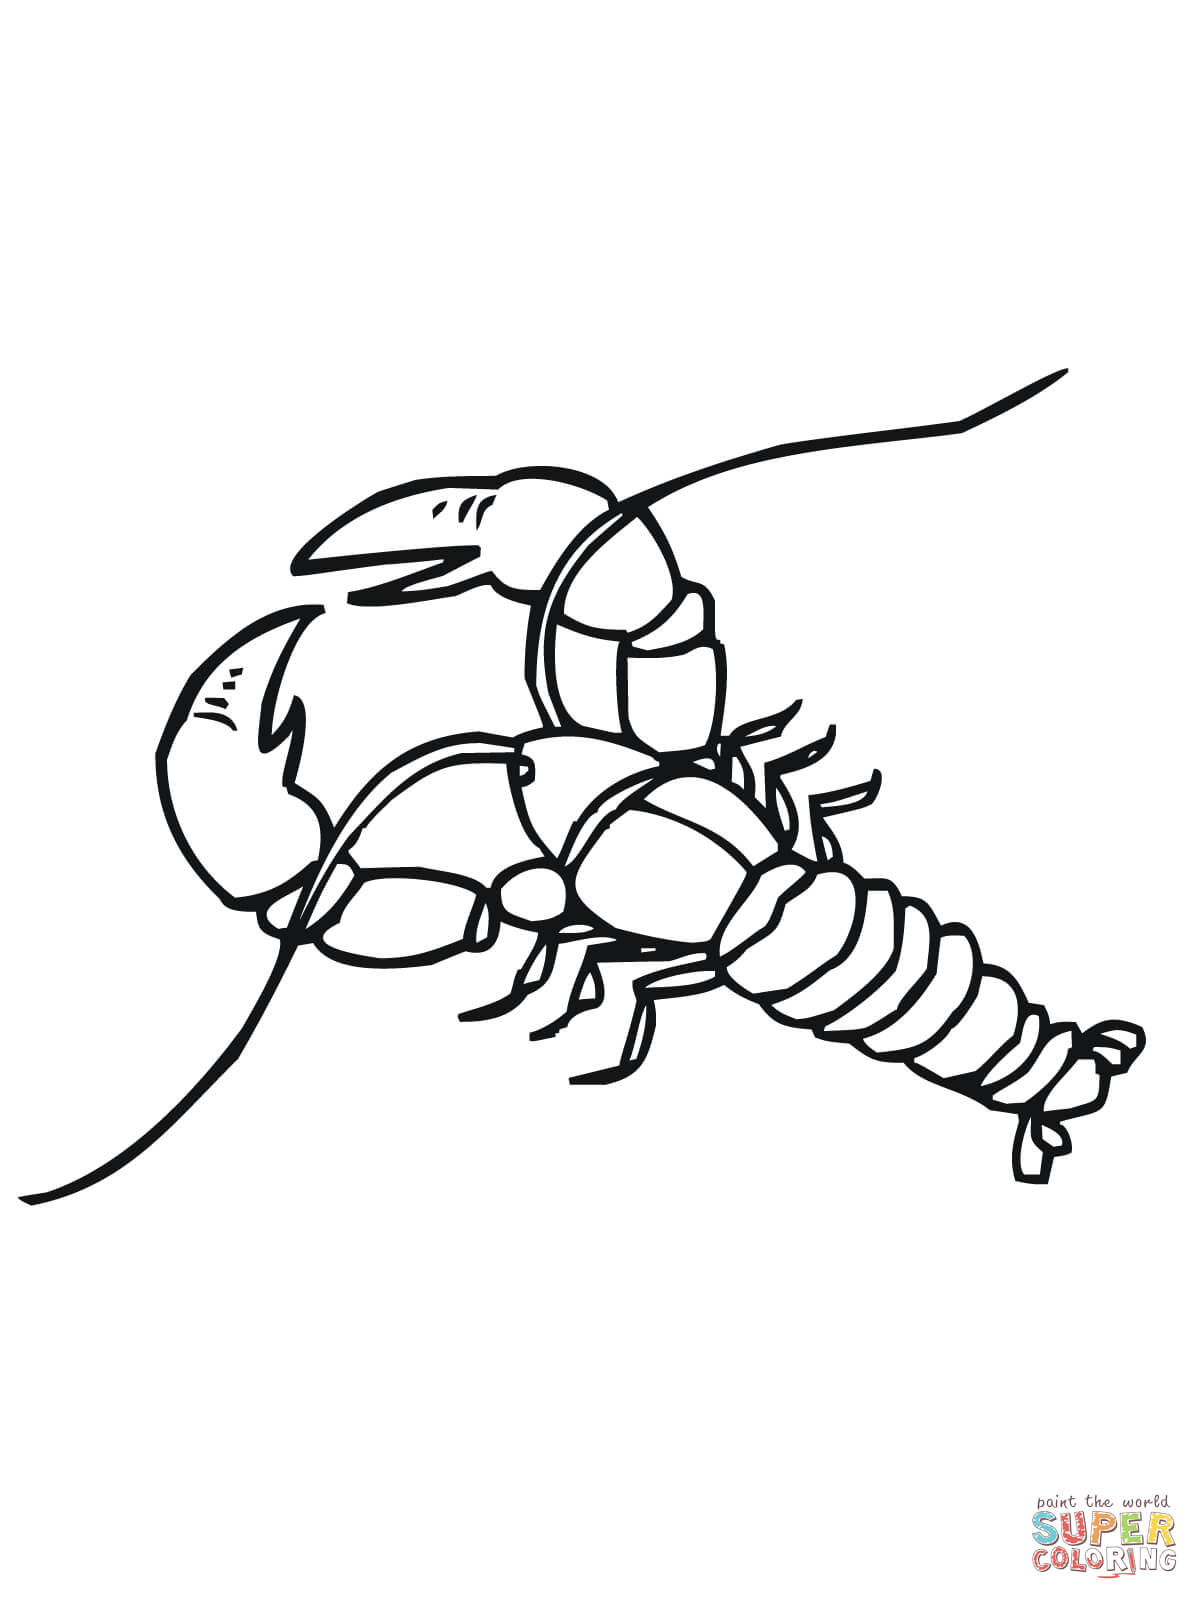 Danube Crayfish Coloring Page Free Printable Coloring Pages